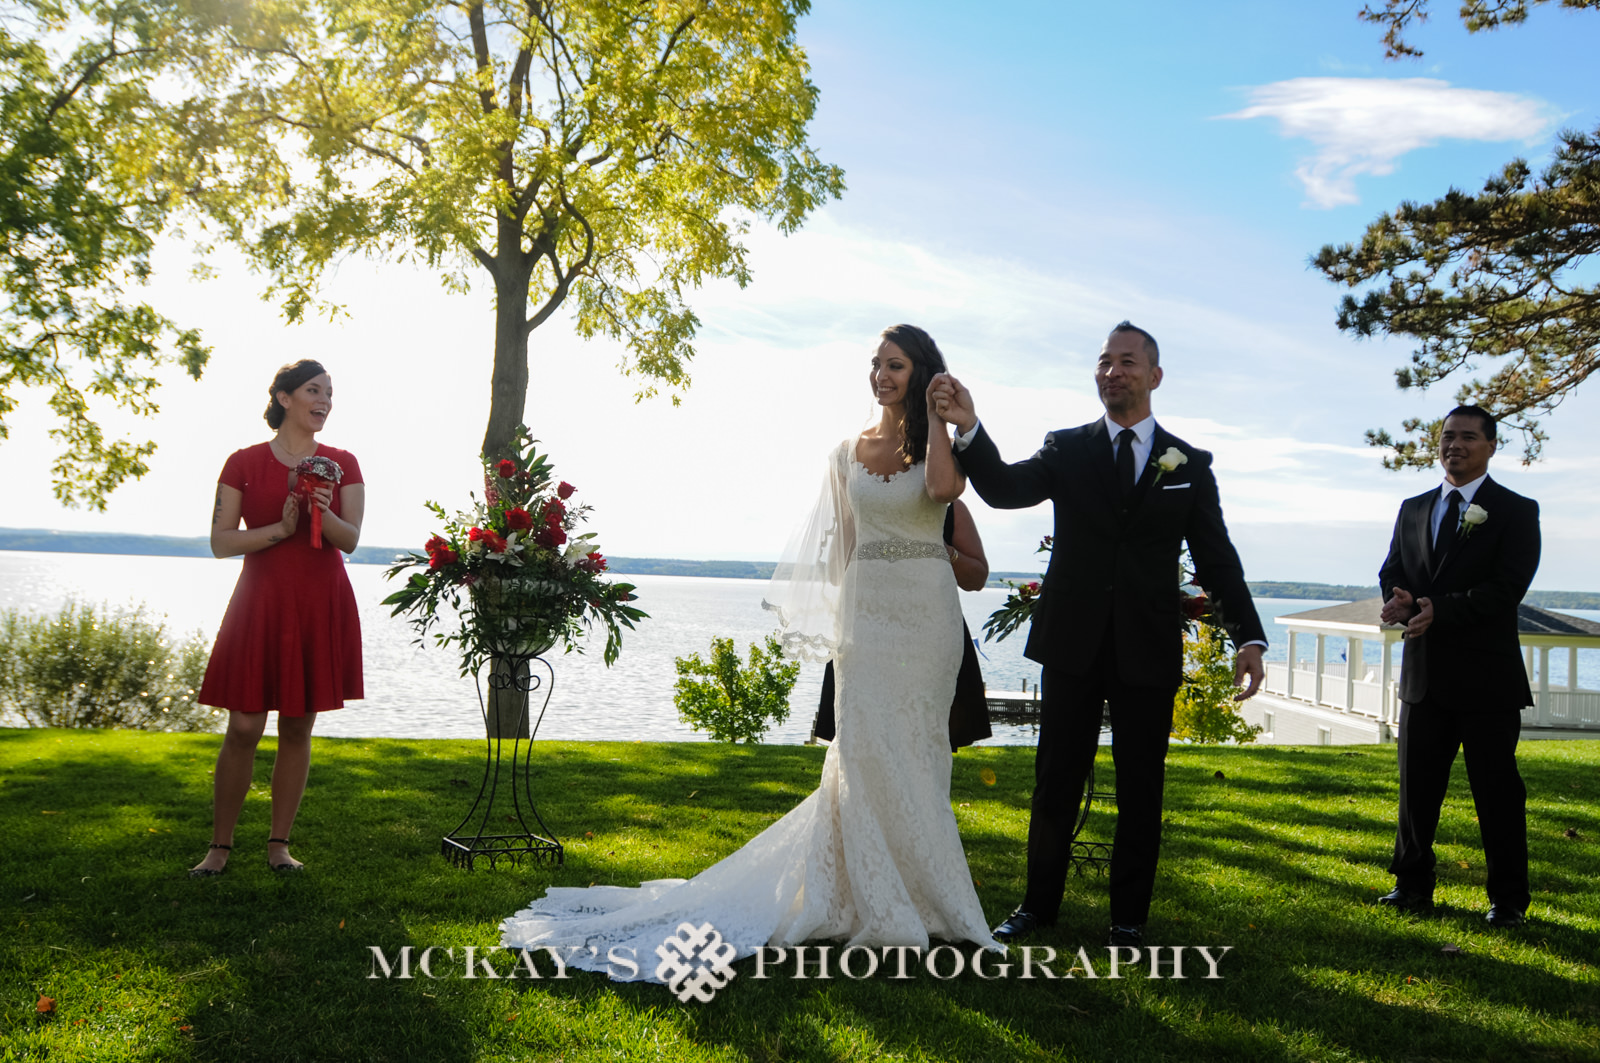 Lake wedding venues in the Finger Lakes